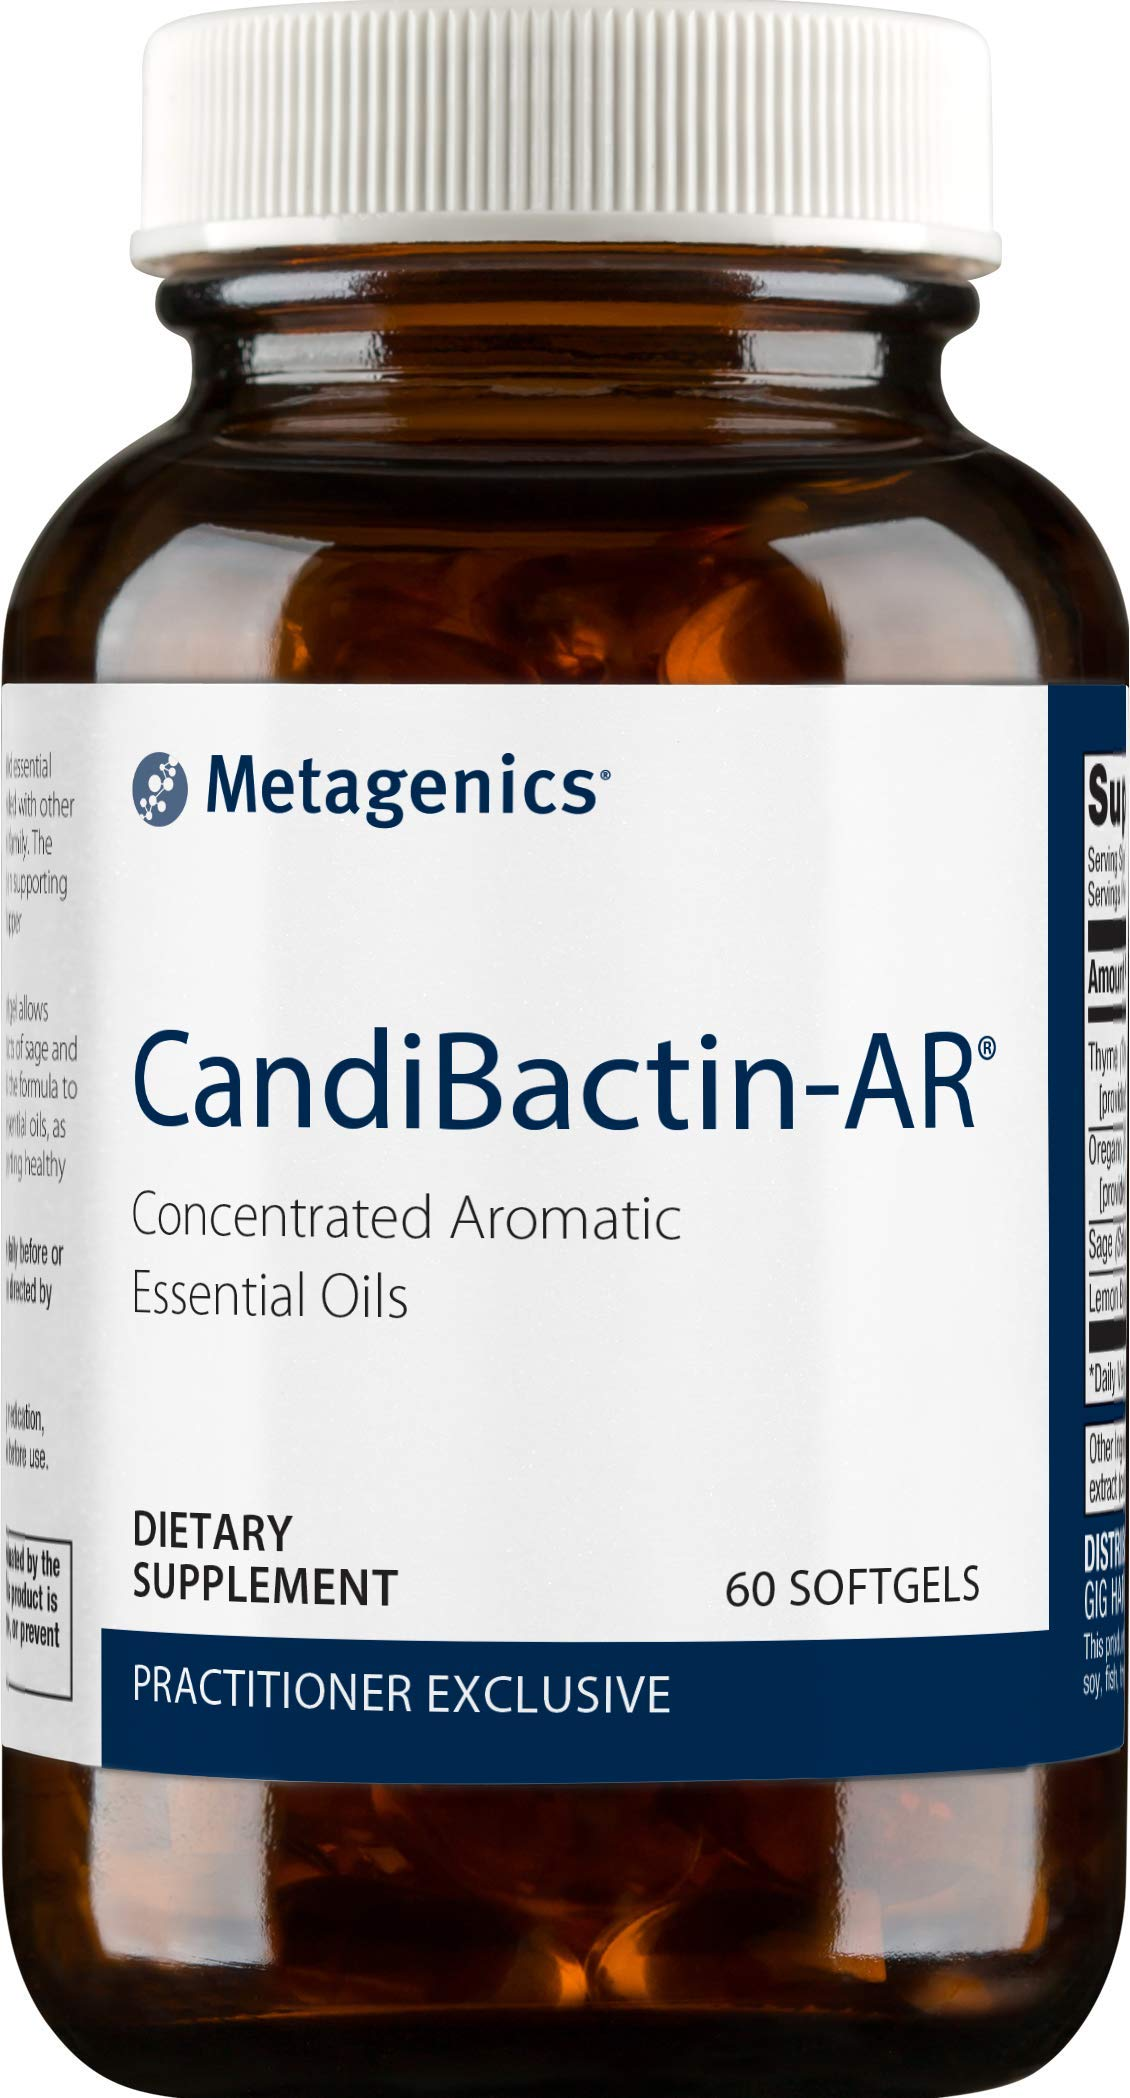 Metagenics CandiBactin-AR 60SG by Metagenics